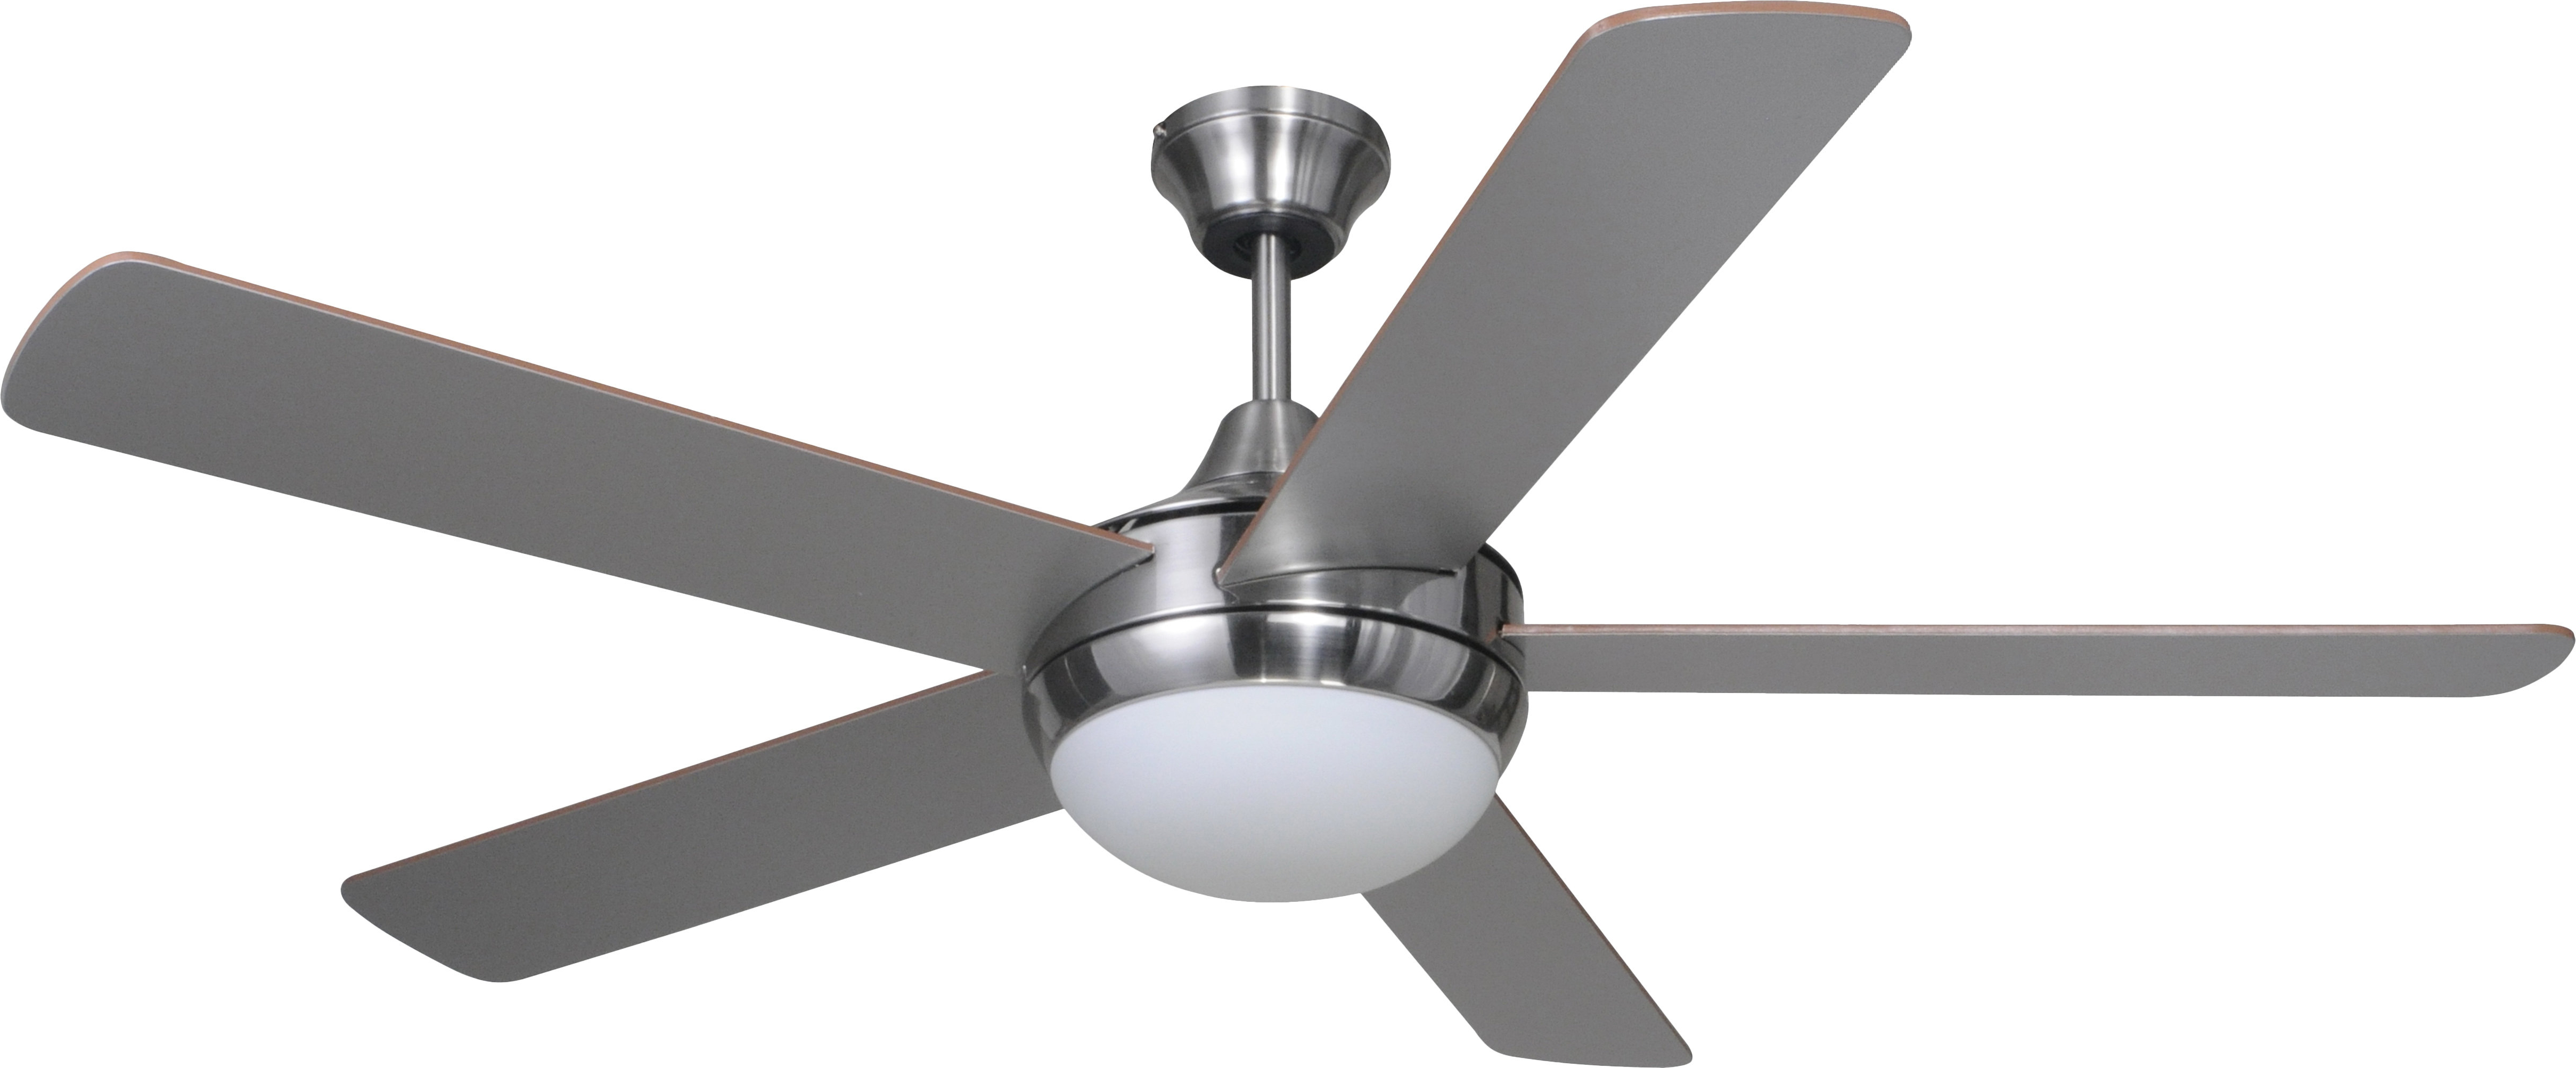 2020 Falco 5 Blade Ceiling Fan With Remote, Light Kit Included Within Beltran 5 Blade Ceiling Fans (View 9 of 20)